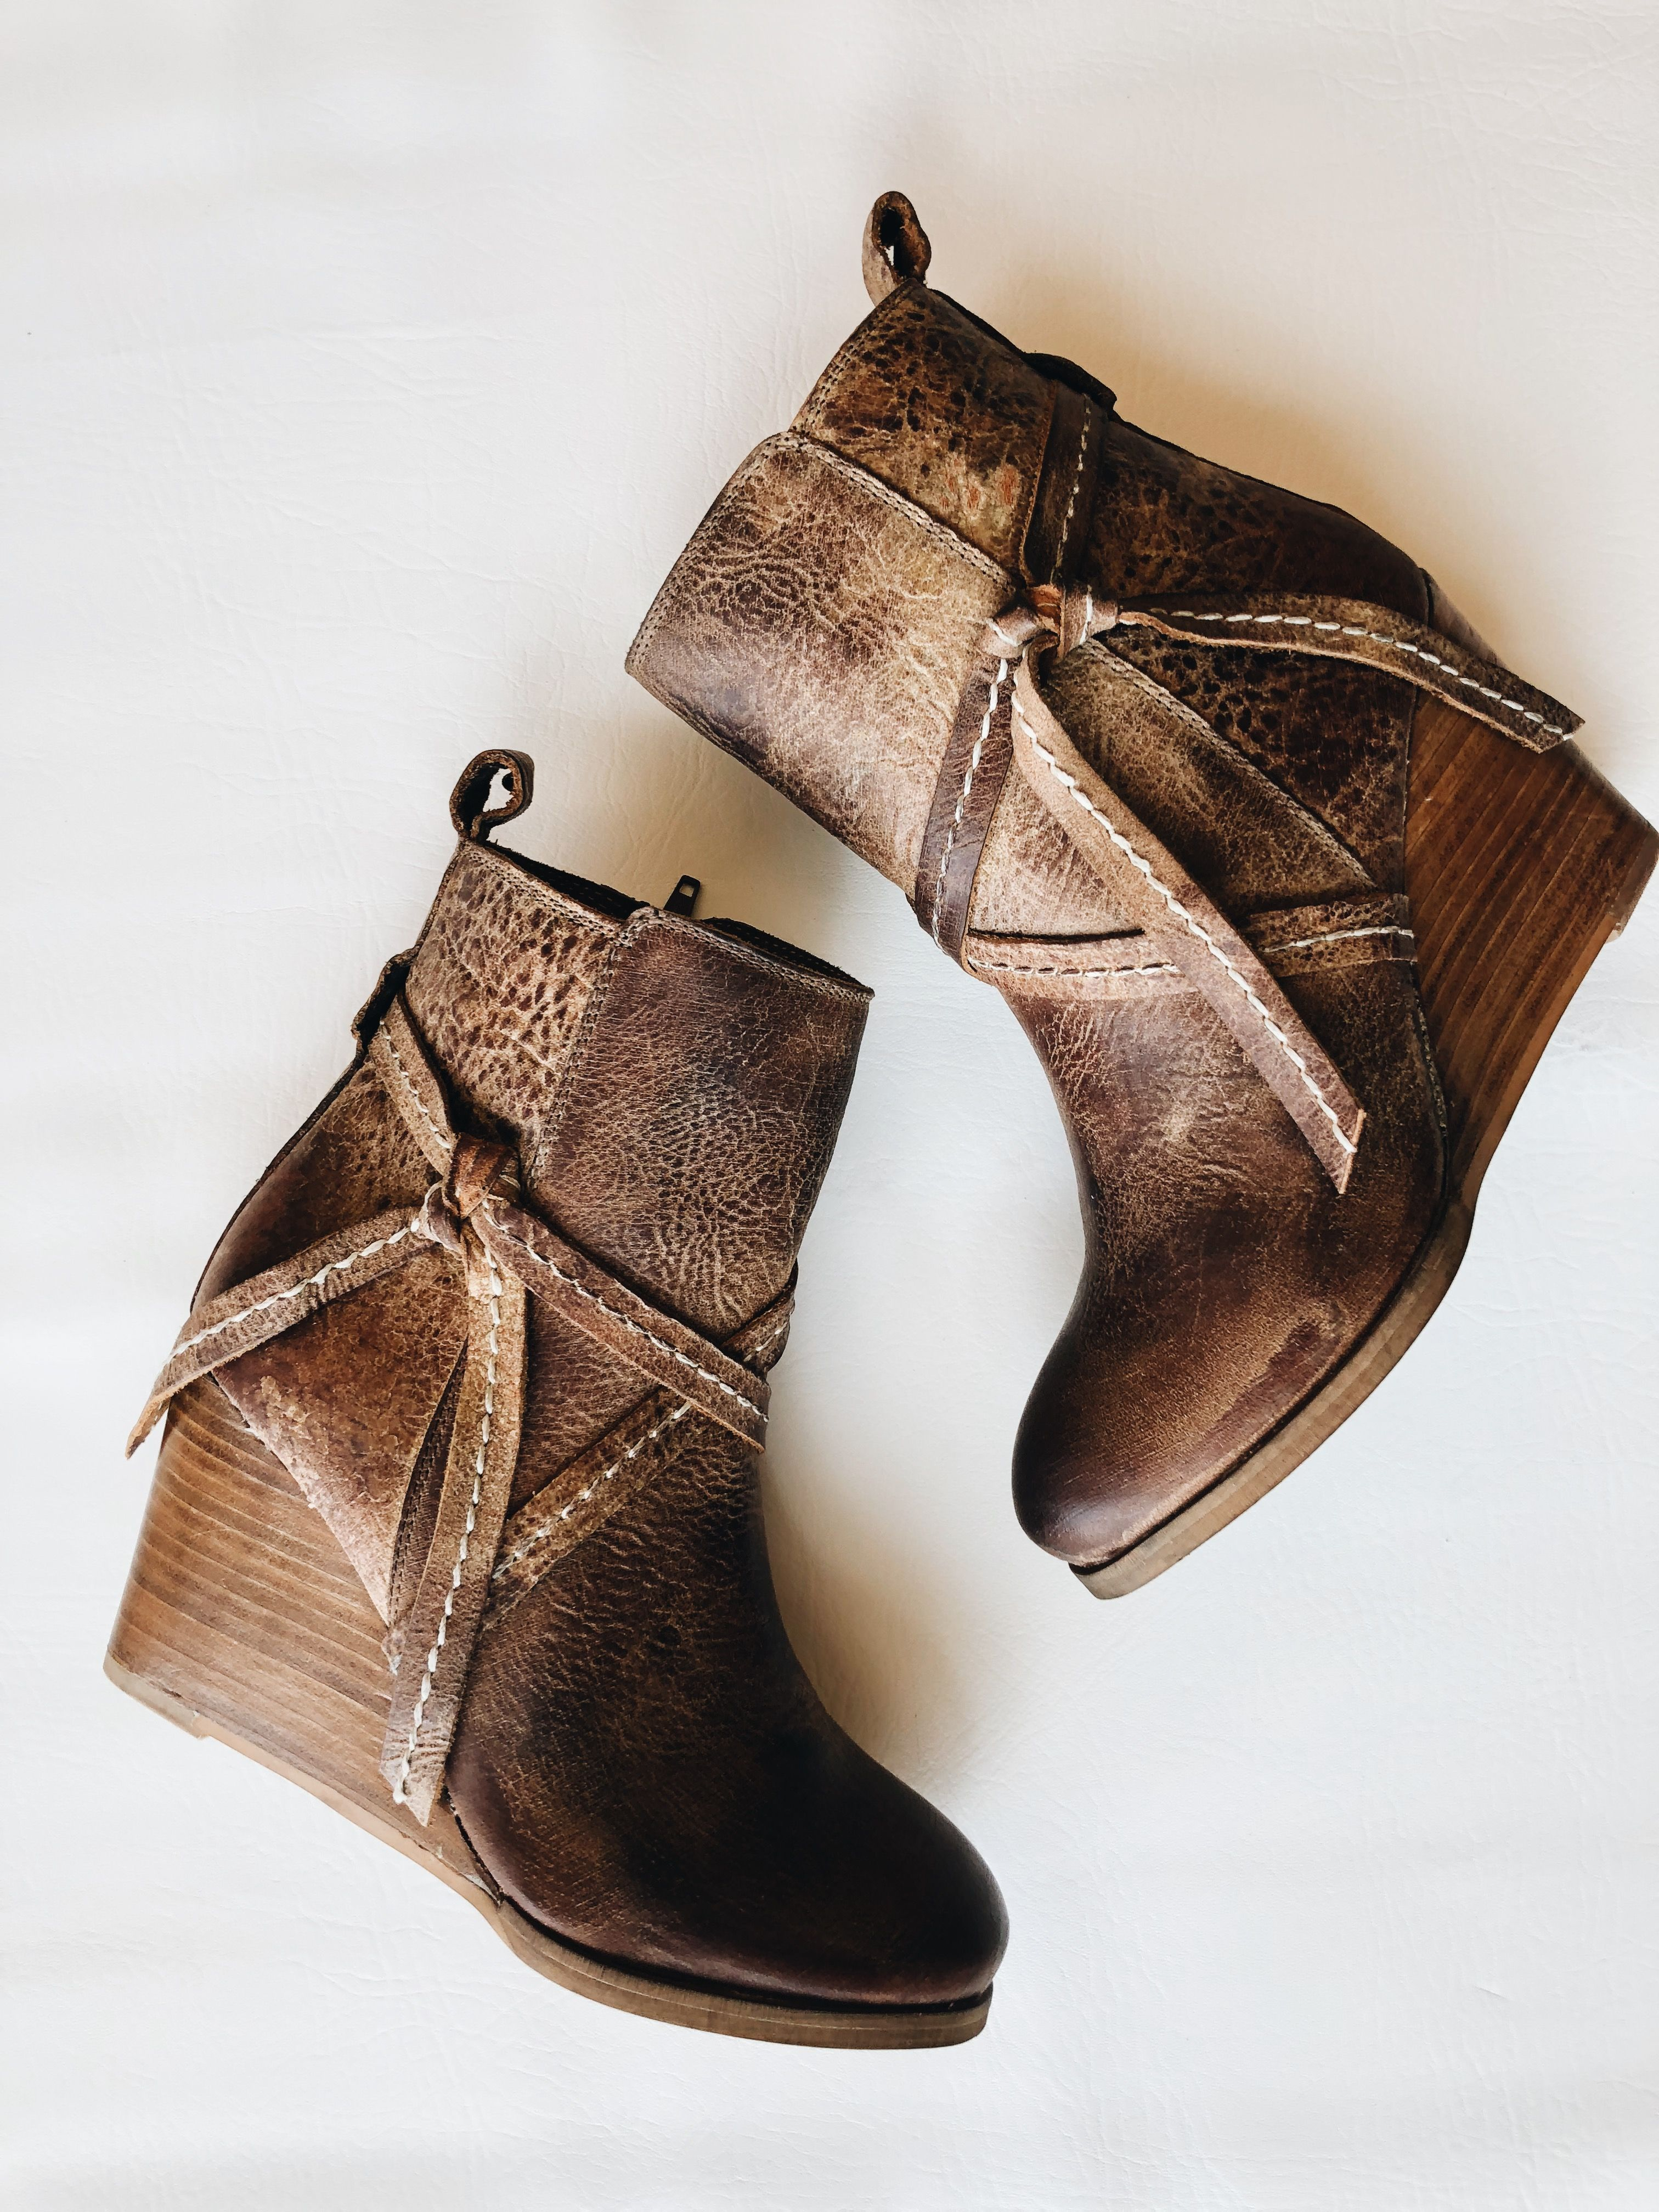 b3e65a2c7e2 Distressed Leather Ankle Boot - Stacked Heel Wedge - Diba True does it  best. This boot is waiting to be worn. Love the look of the distressed  leather ...